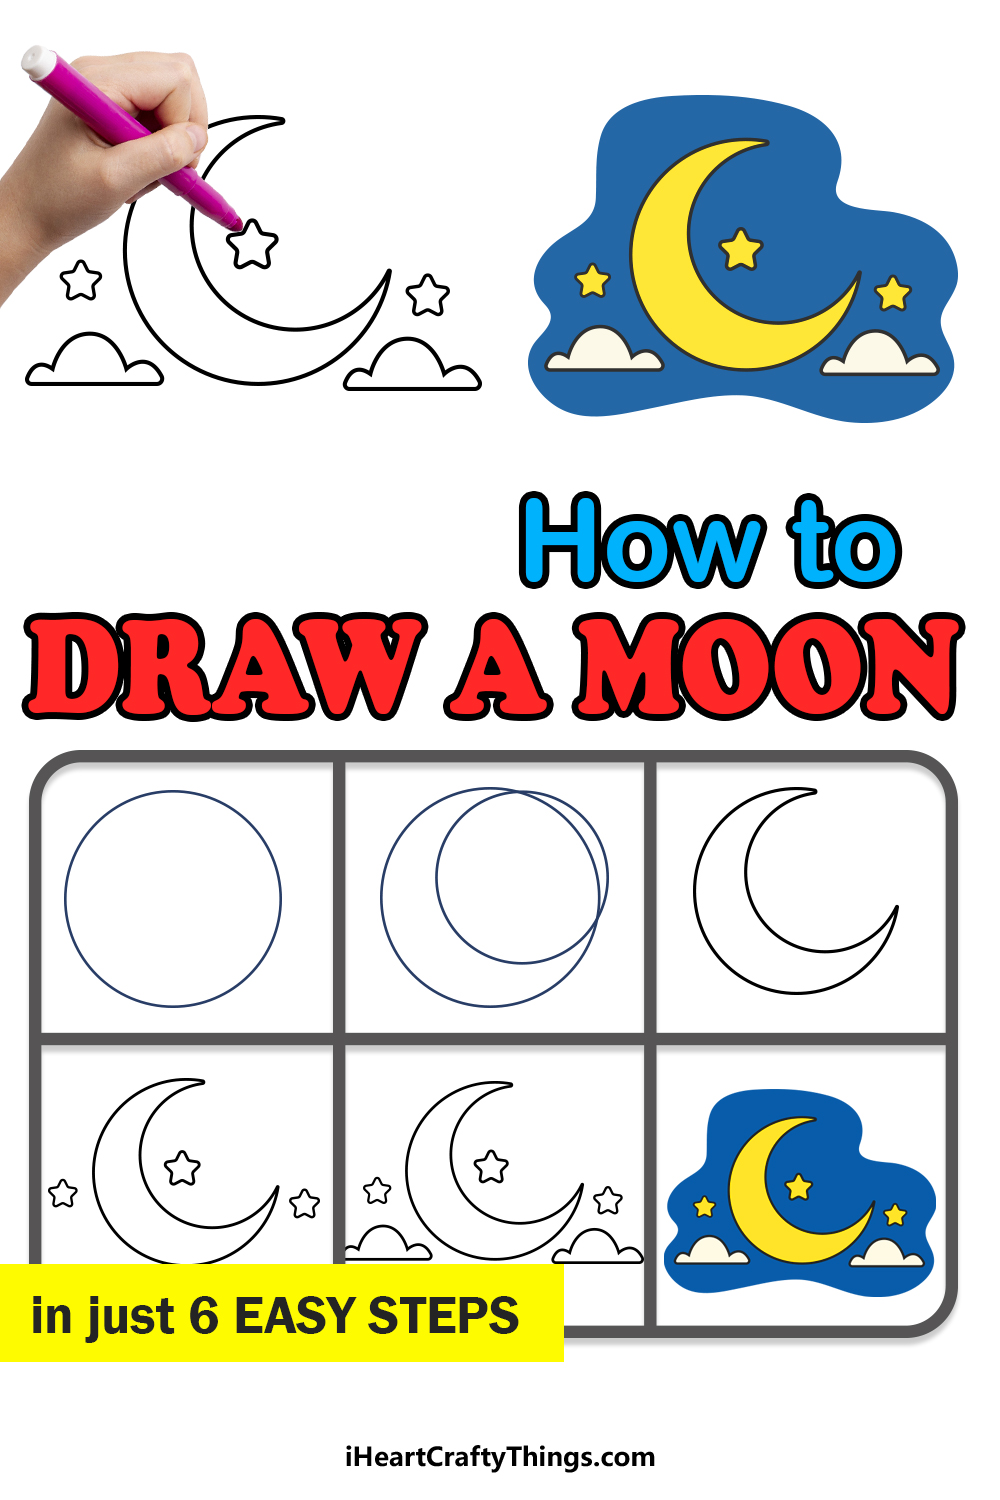 how to draw a moon in 6 easy steps